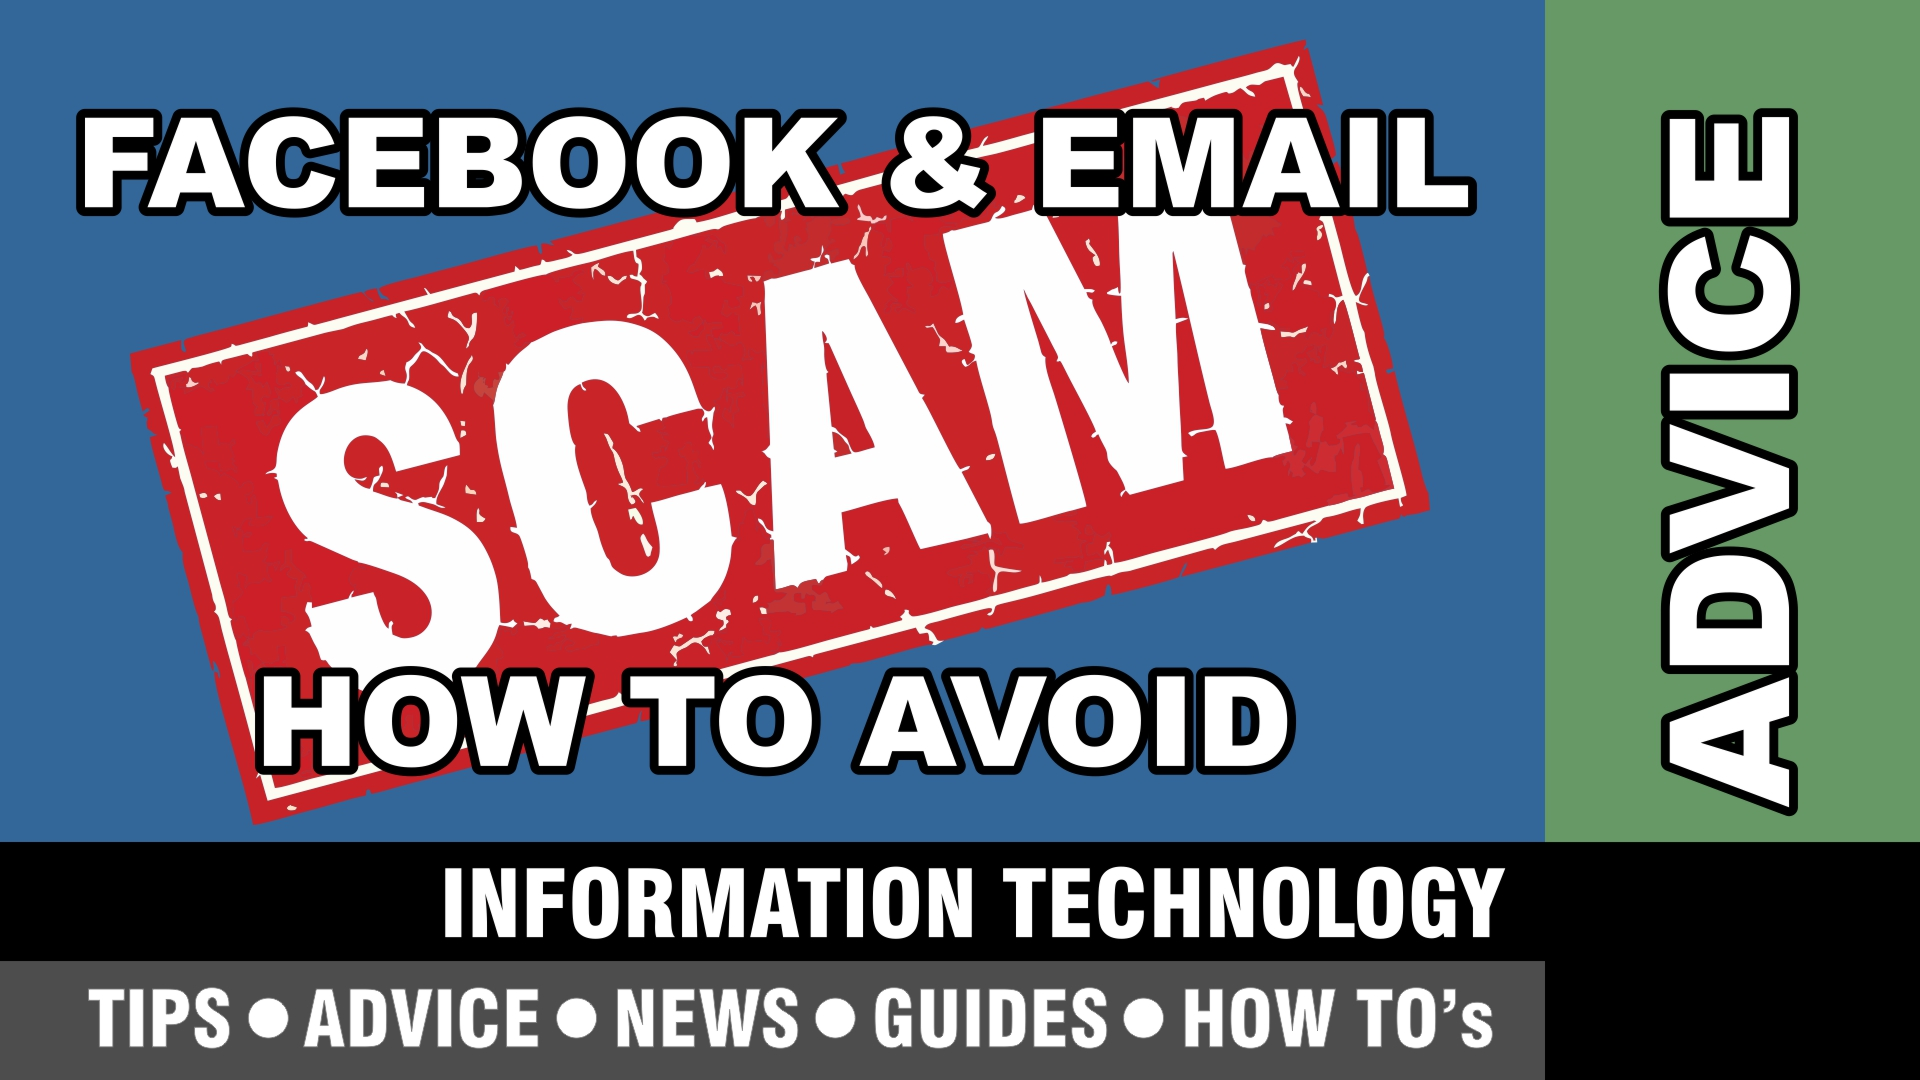 facebook and email scams – how to avoid being a victim – discussion & advice